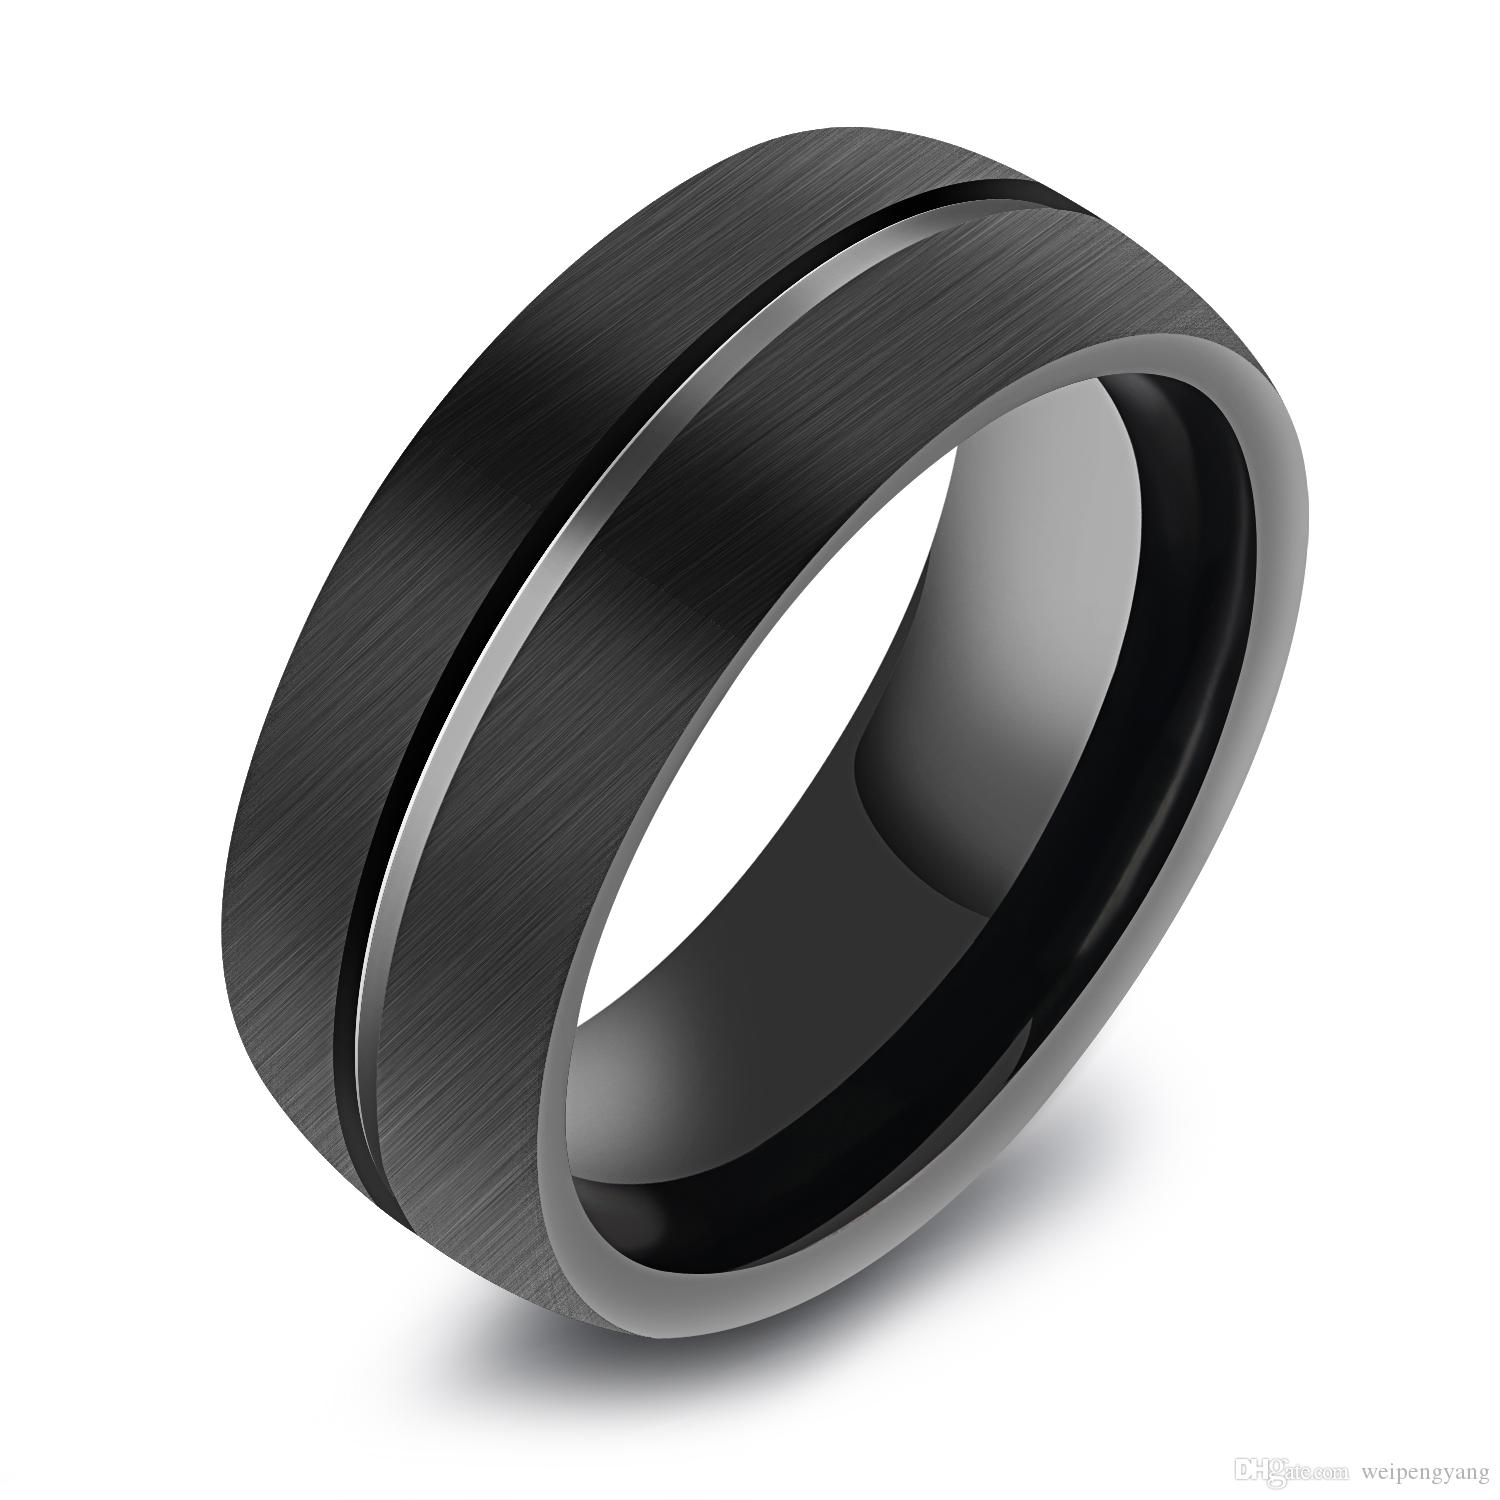 2019 8mm Mens Black Tungsten Ring Domed Surface Carbide Brushed Silver Wedding Band From Weipengyang 4691 Dhgate: Black Wedding Ring Platinum At Reisefeber.org